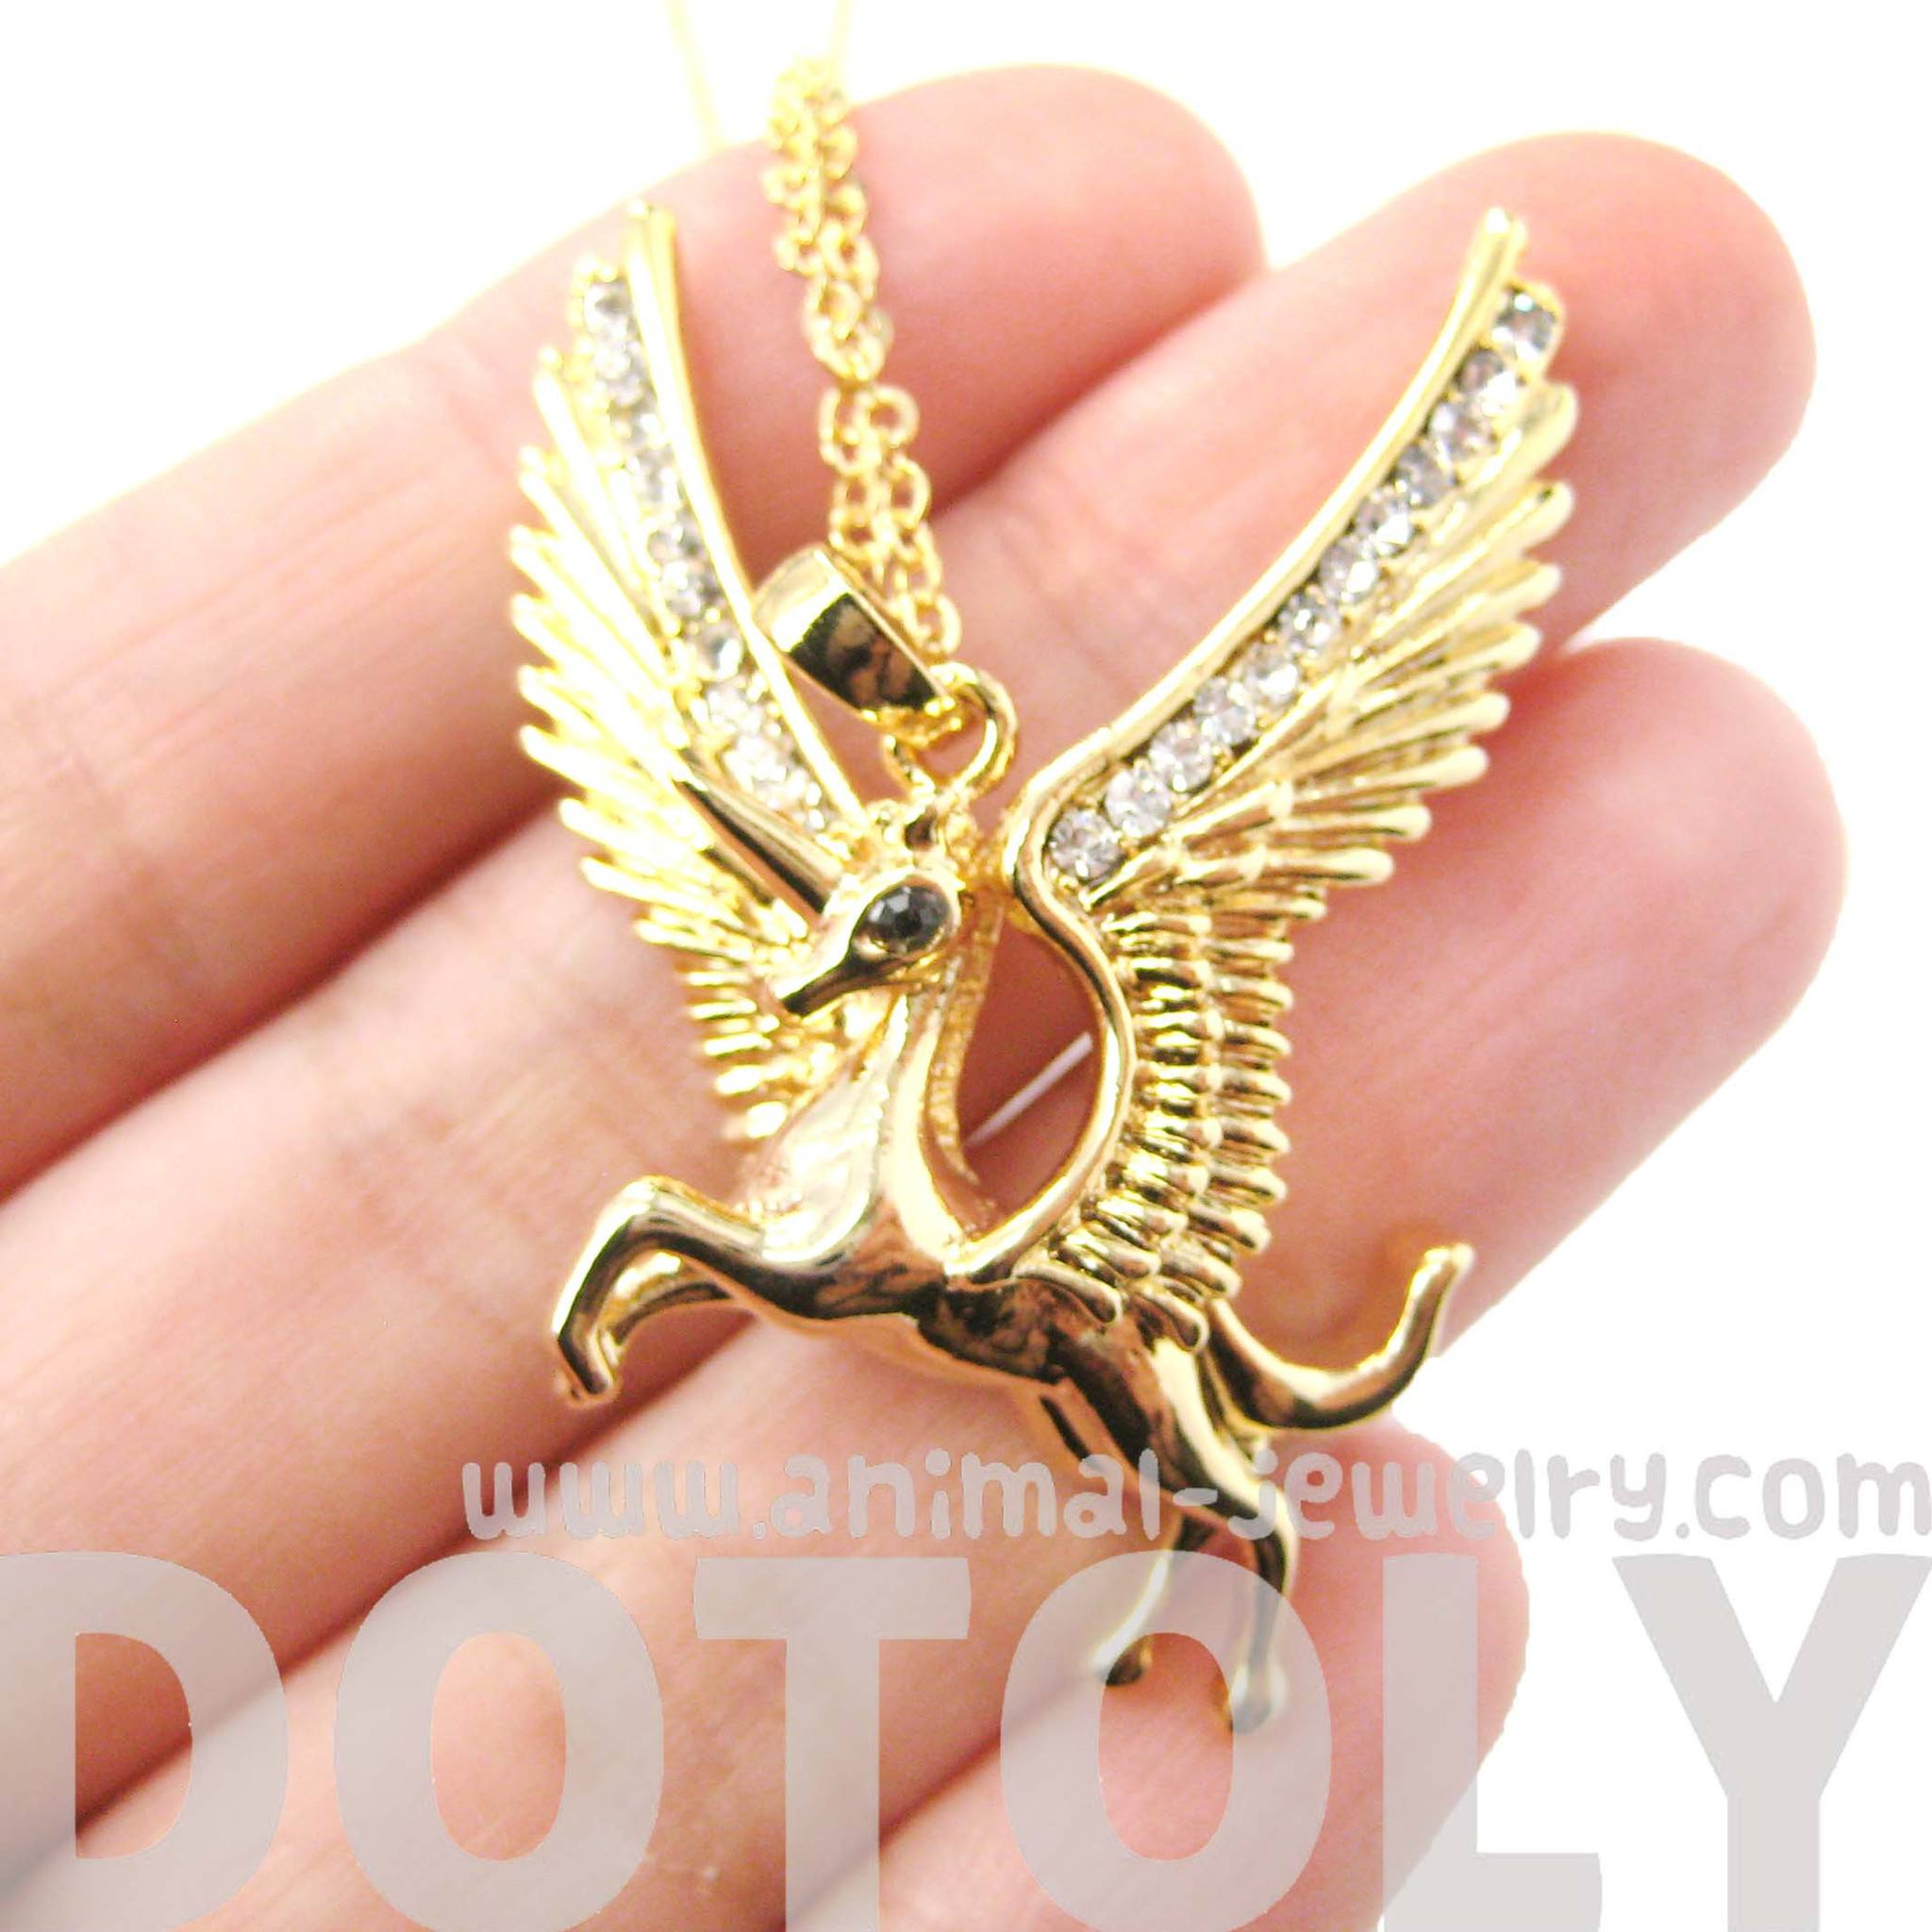 unicorn-horse-animal-pendant-necklace-in-gold-with-large-wings-animal-jewelry